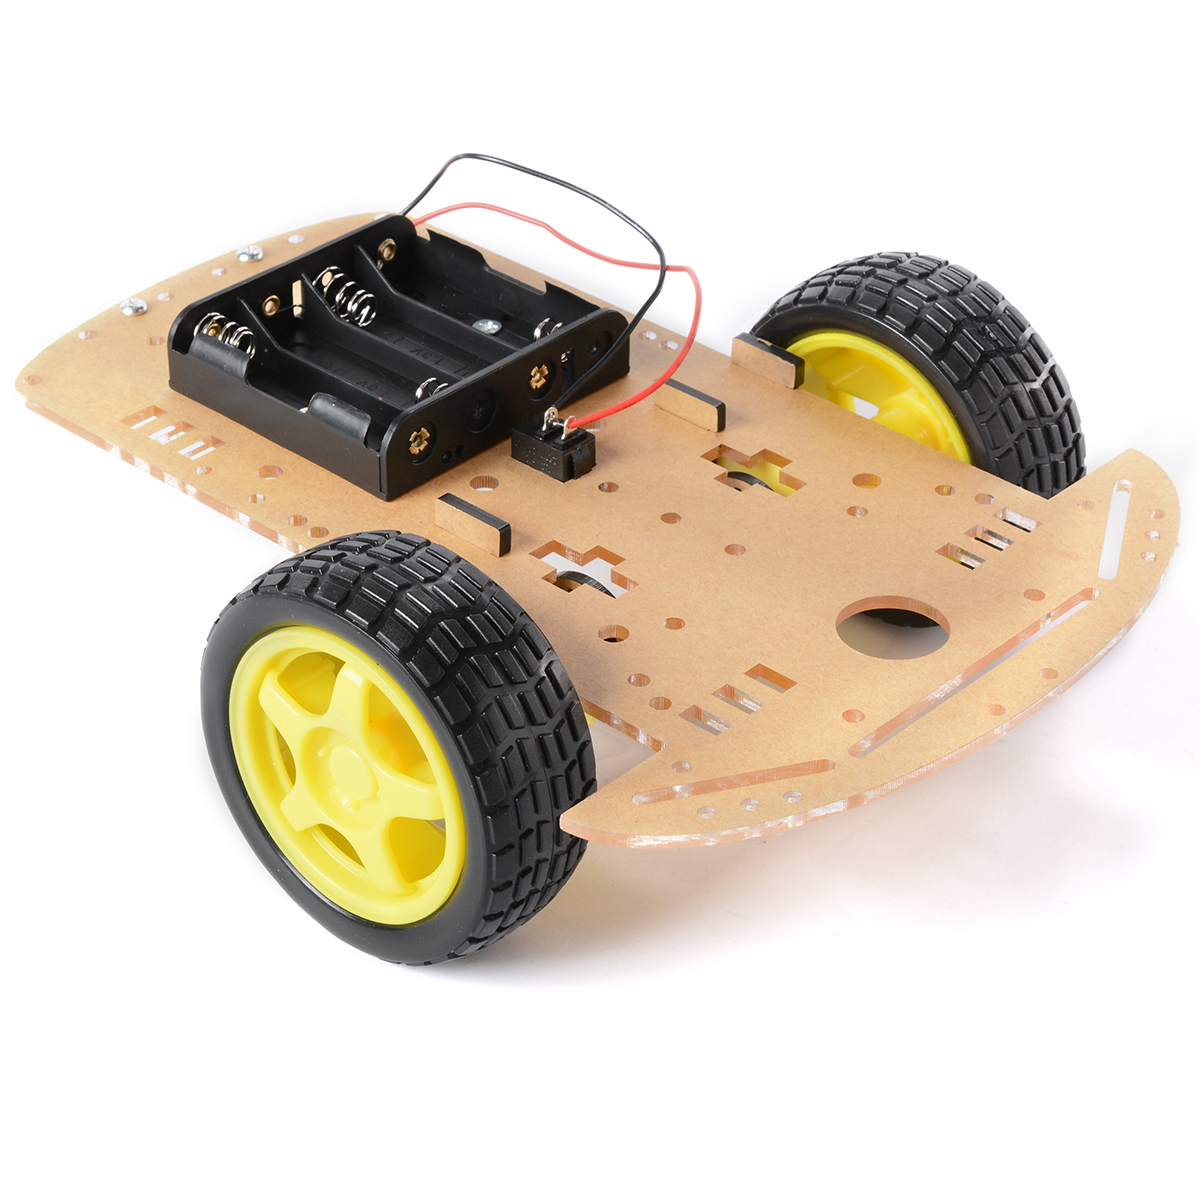 2WD Robot Car Chassis Kit For Arduino Raspberry Pi w/ Encoder and